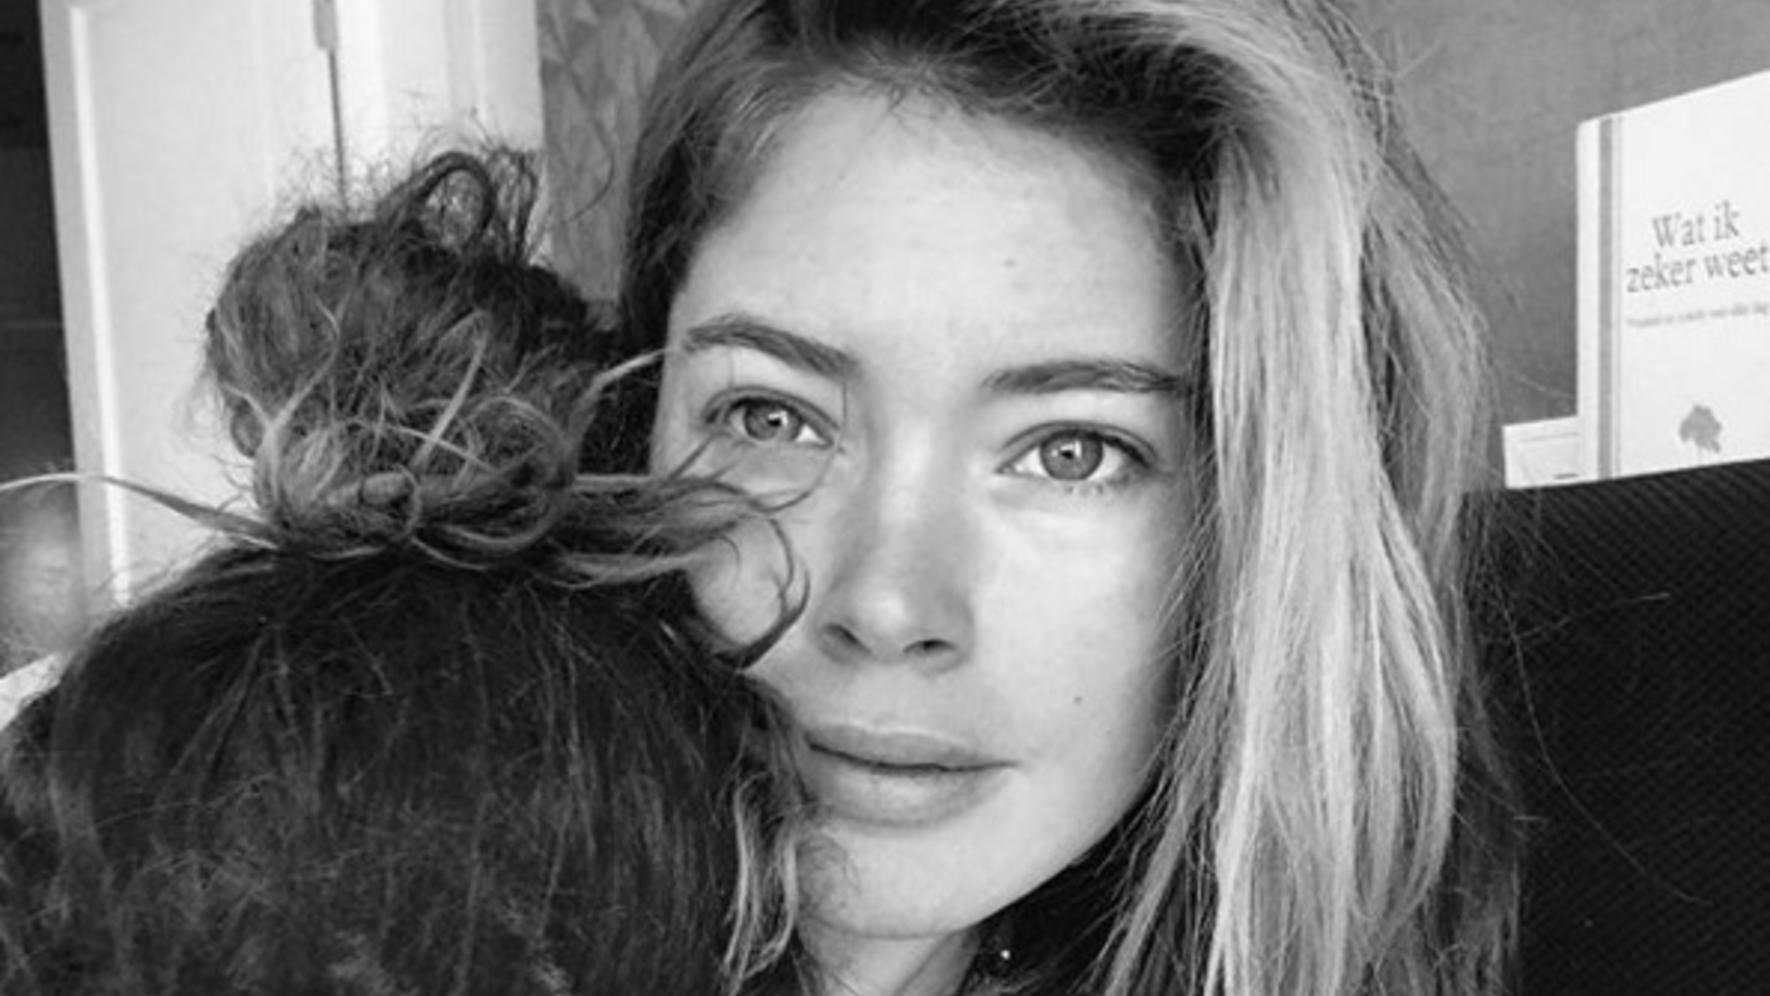 Doutzen Kroes Instagram